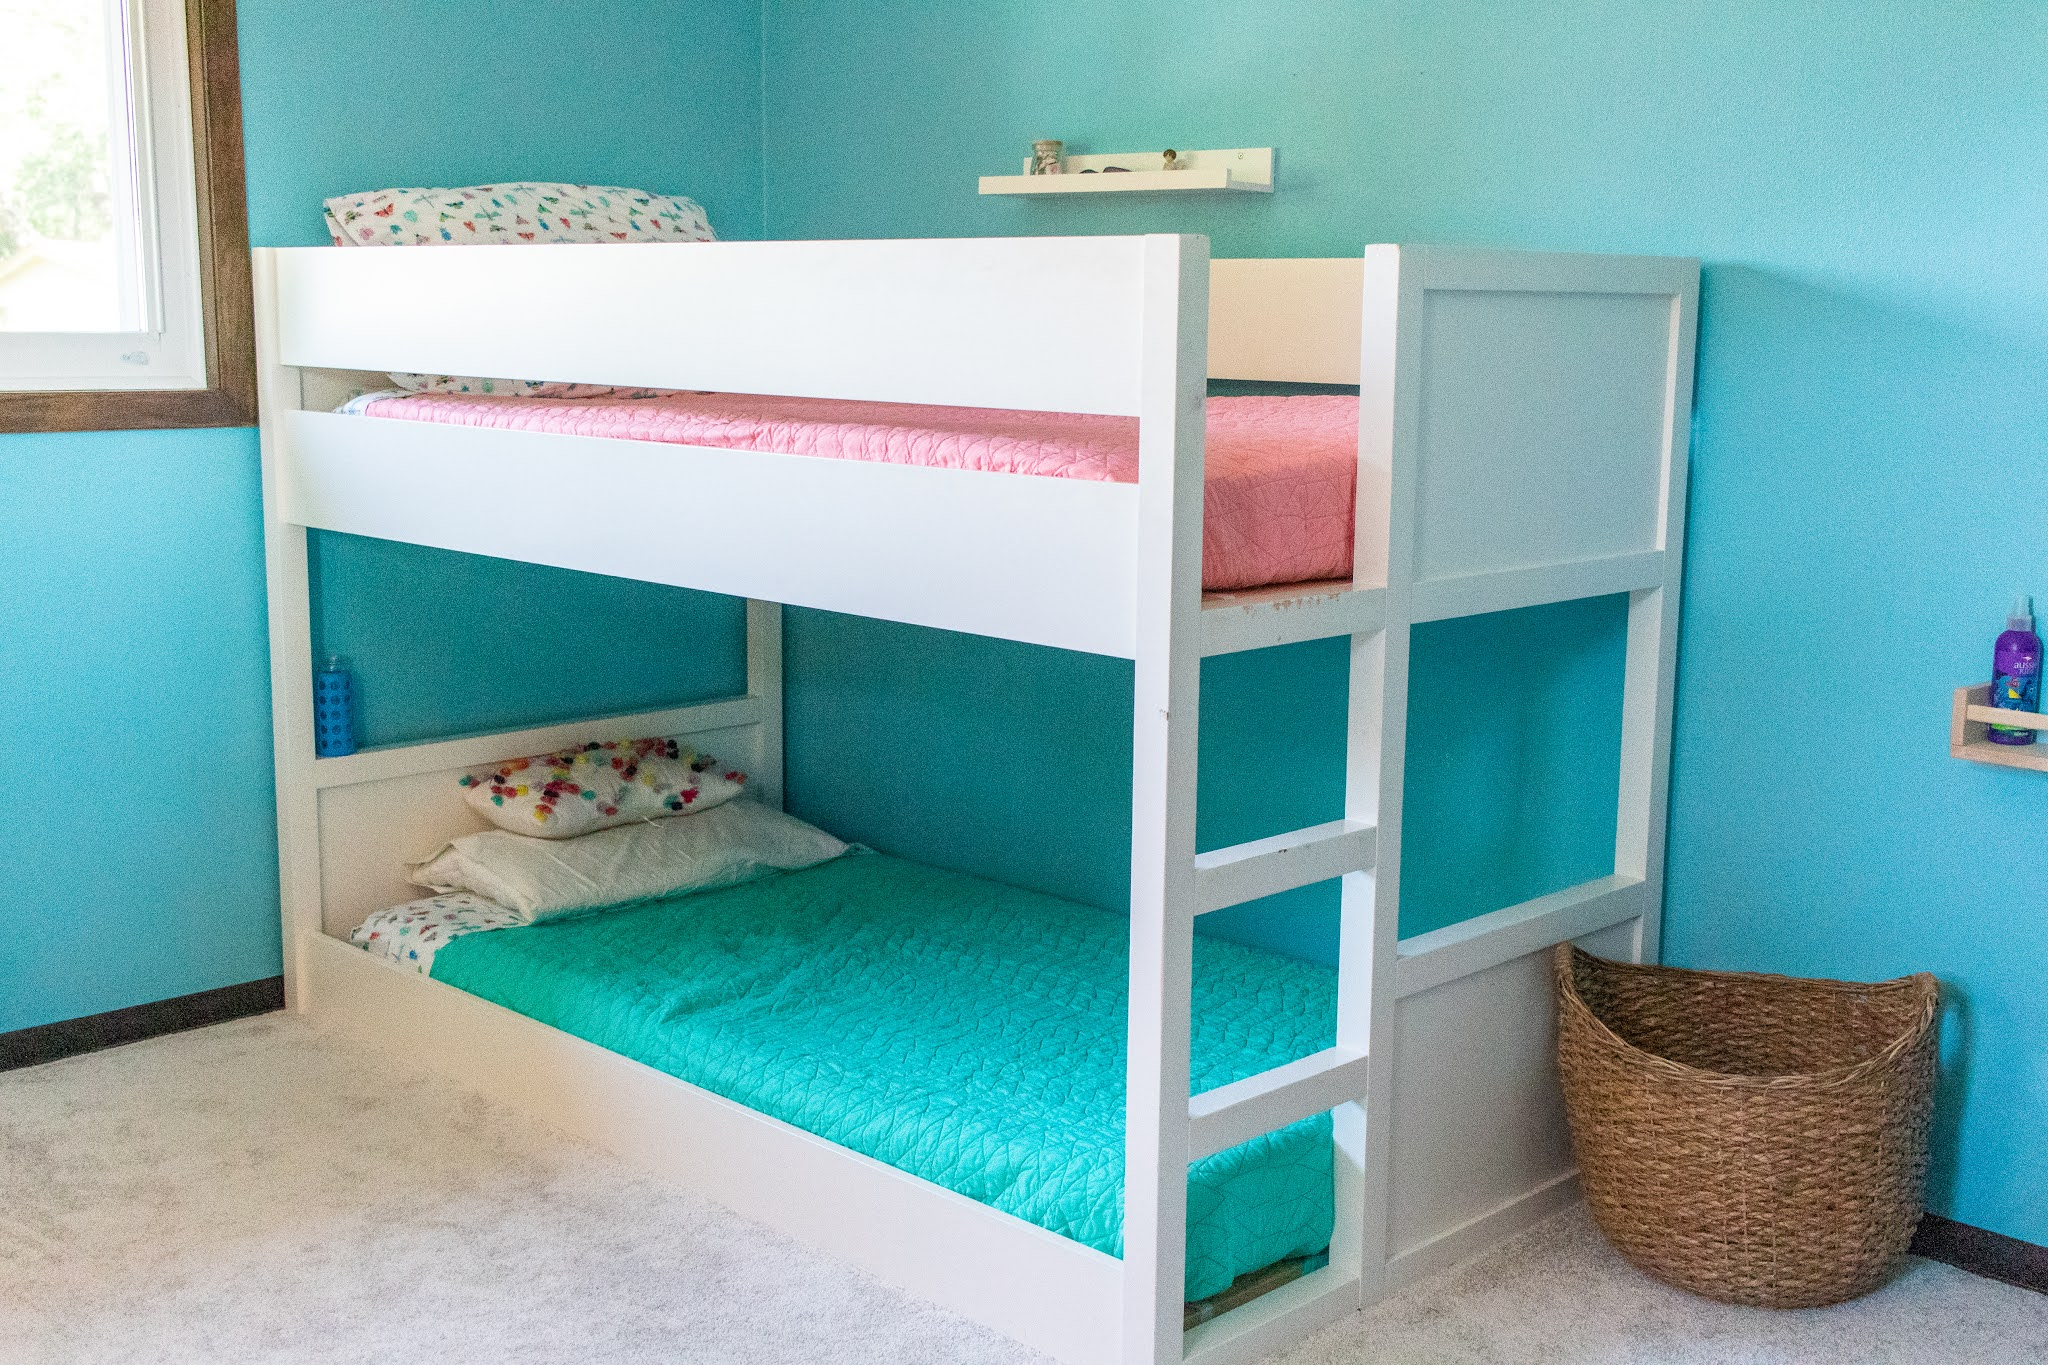 Montessori home inspiration for older kids. Heres a look at how to setup a shared bedroom environment in for toddler and older child.